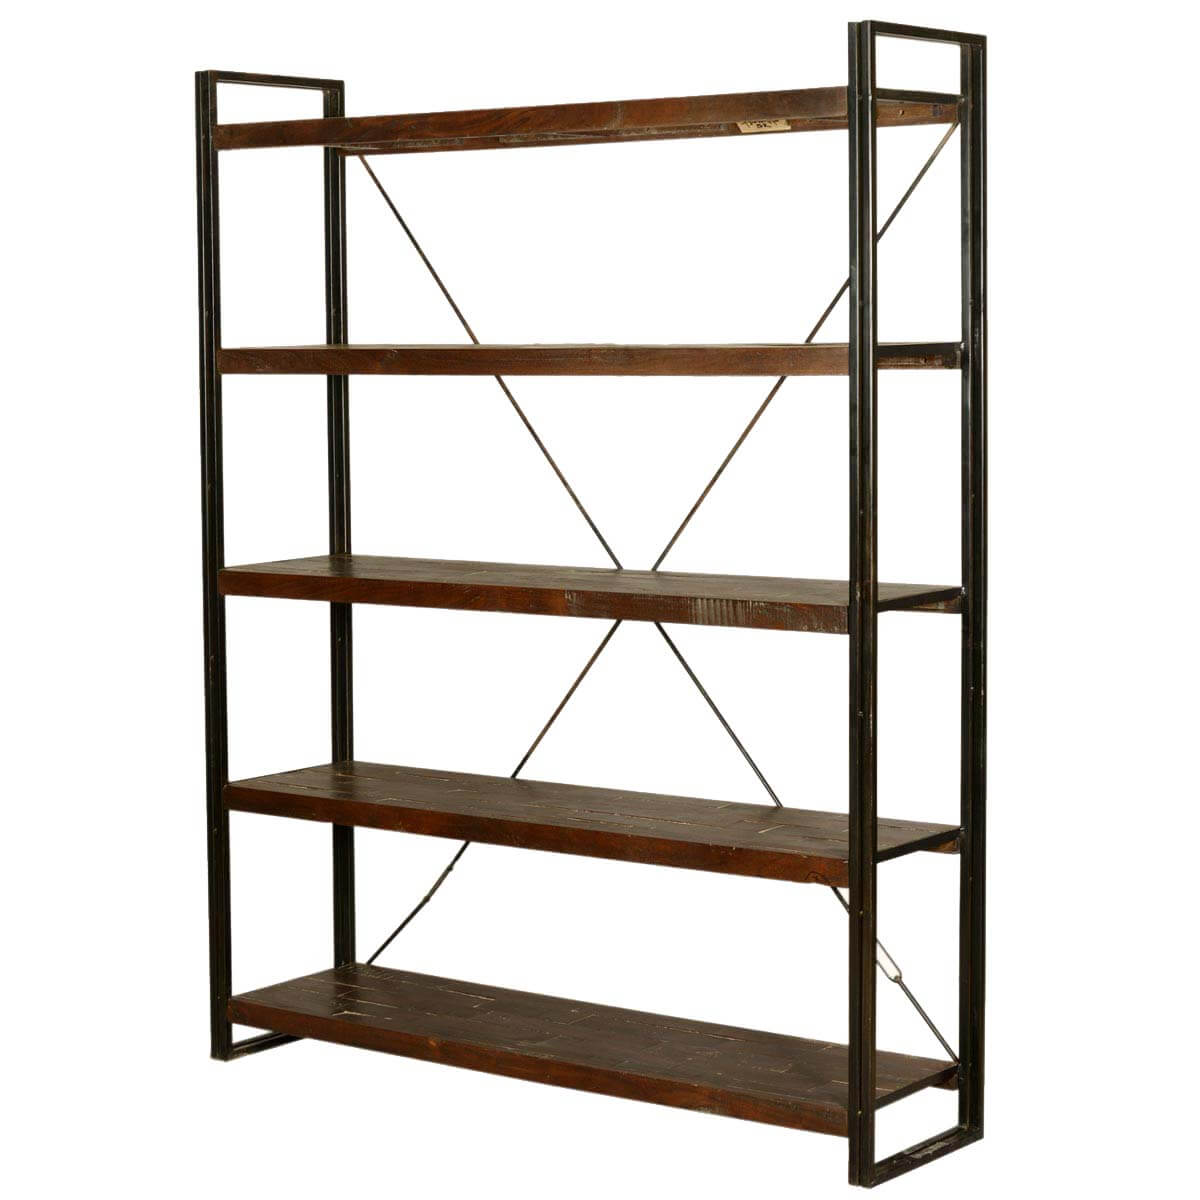 "Industrial French Library 79"" Tall Wood & Iron Wall Bookcase Shelves"